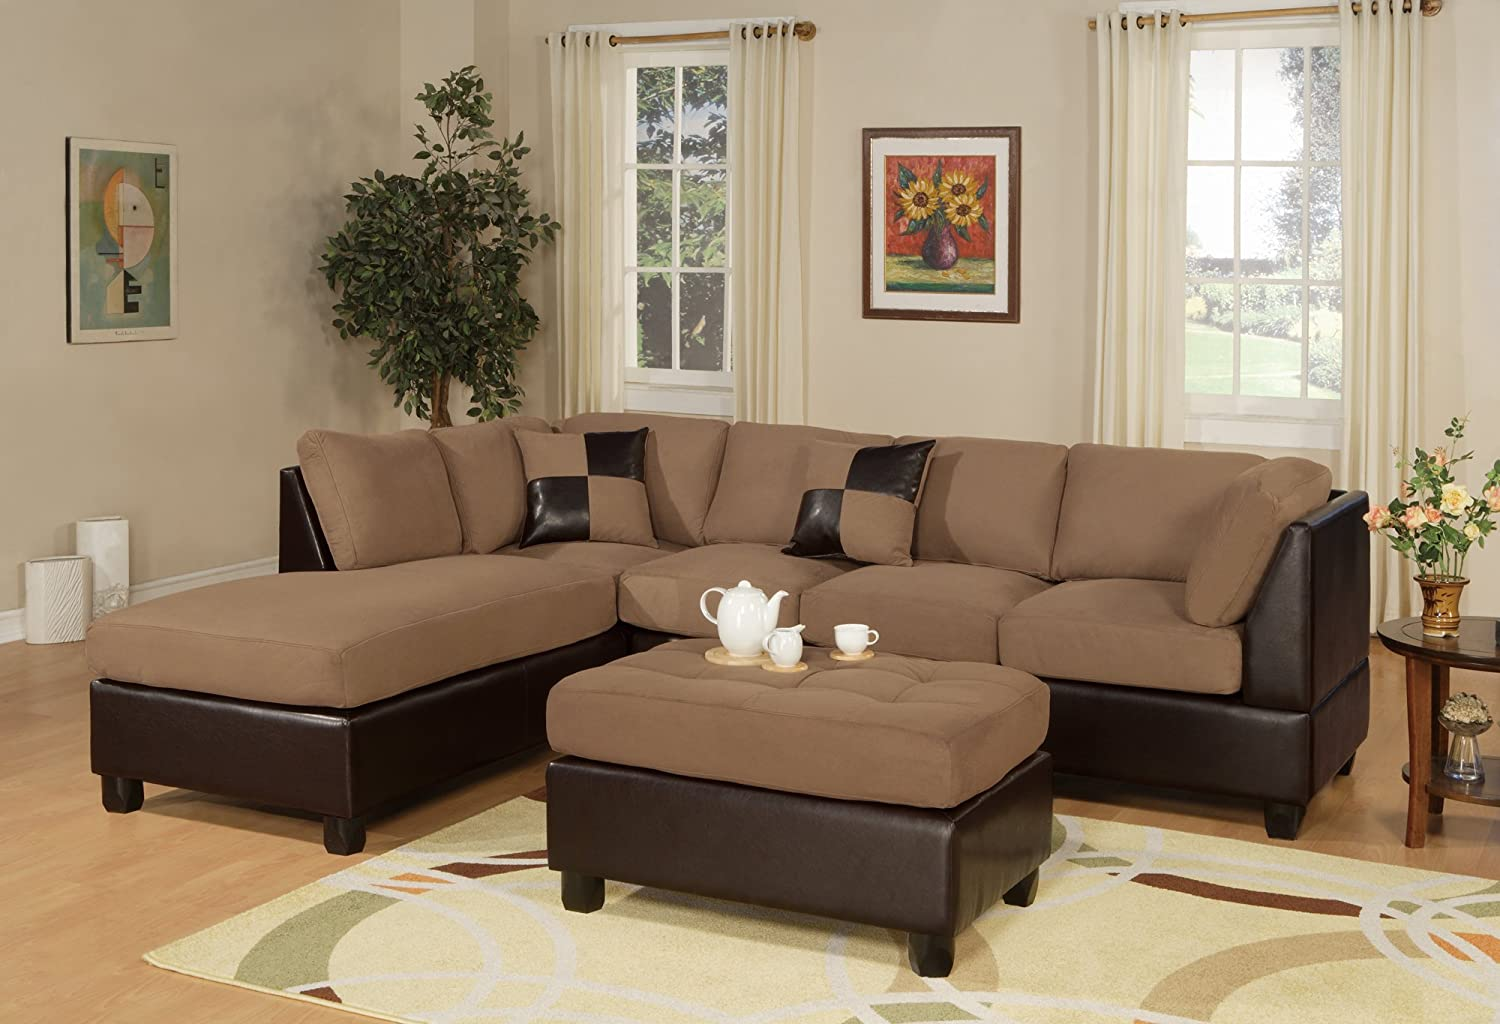 Sale On Sofas Amazoncom Bobkona Hungtinton Microfiber Faux Leather 3 Piece